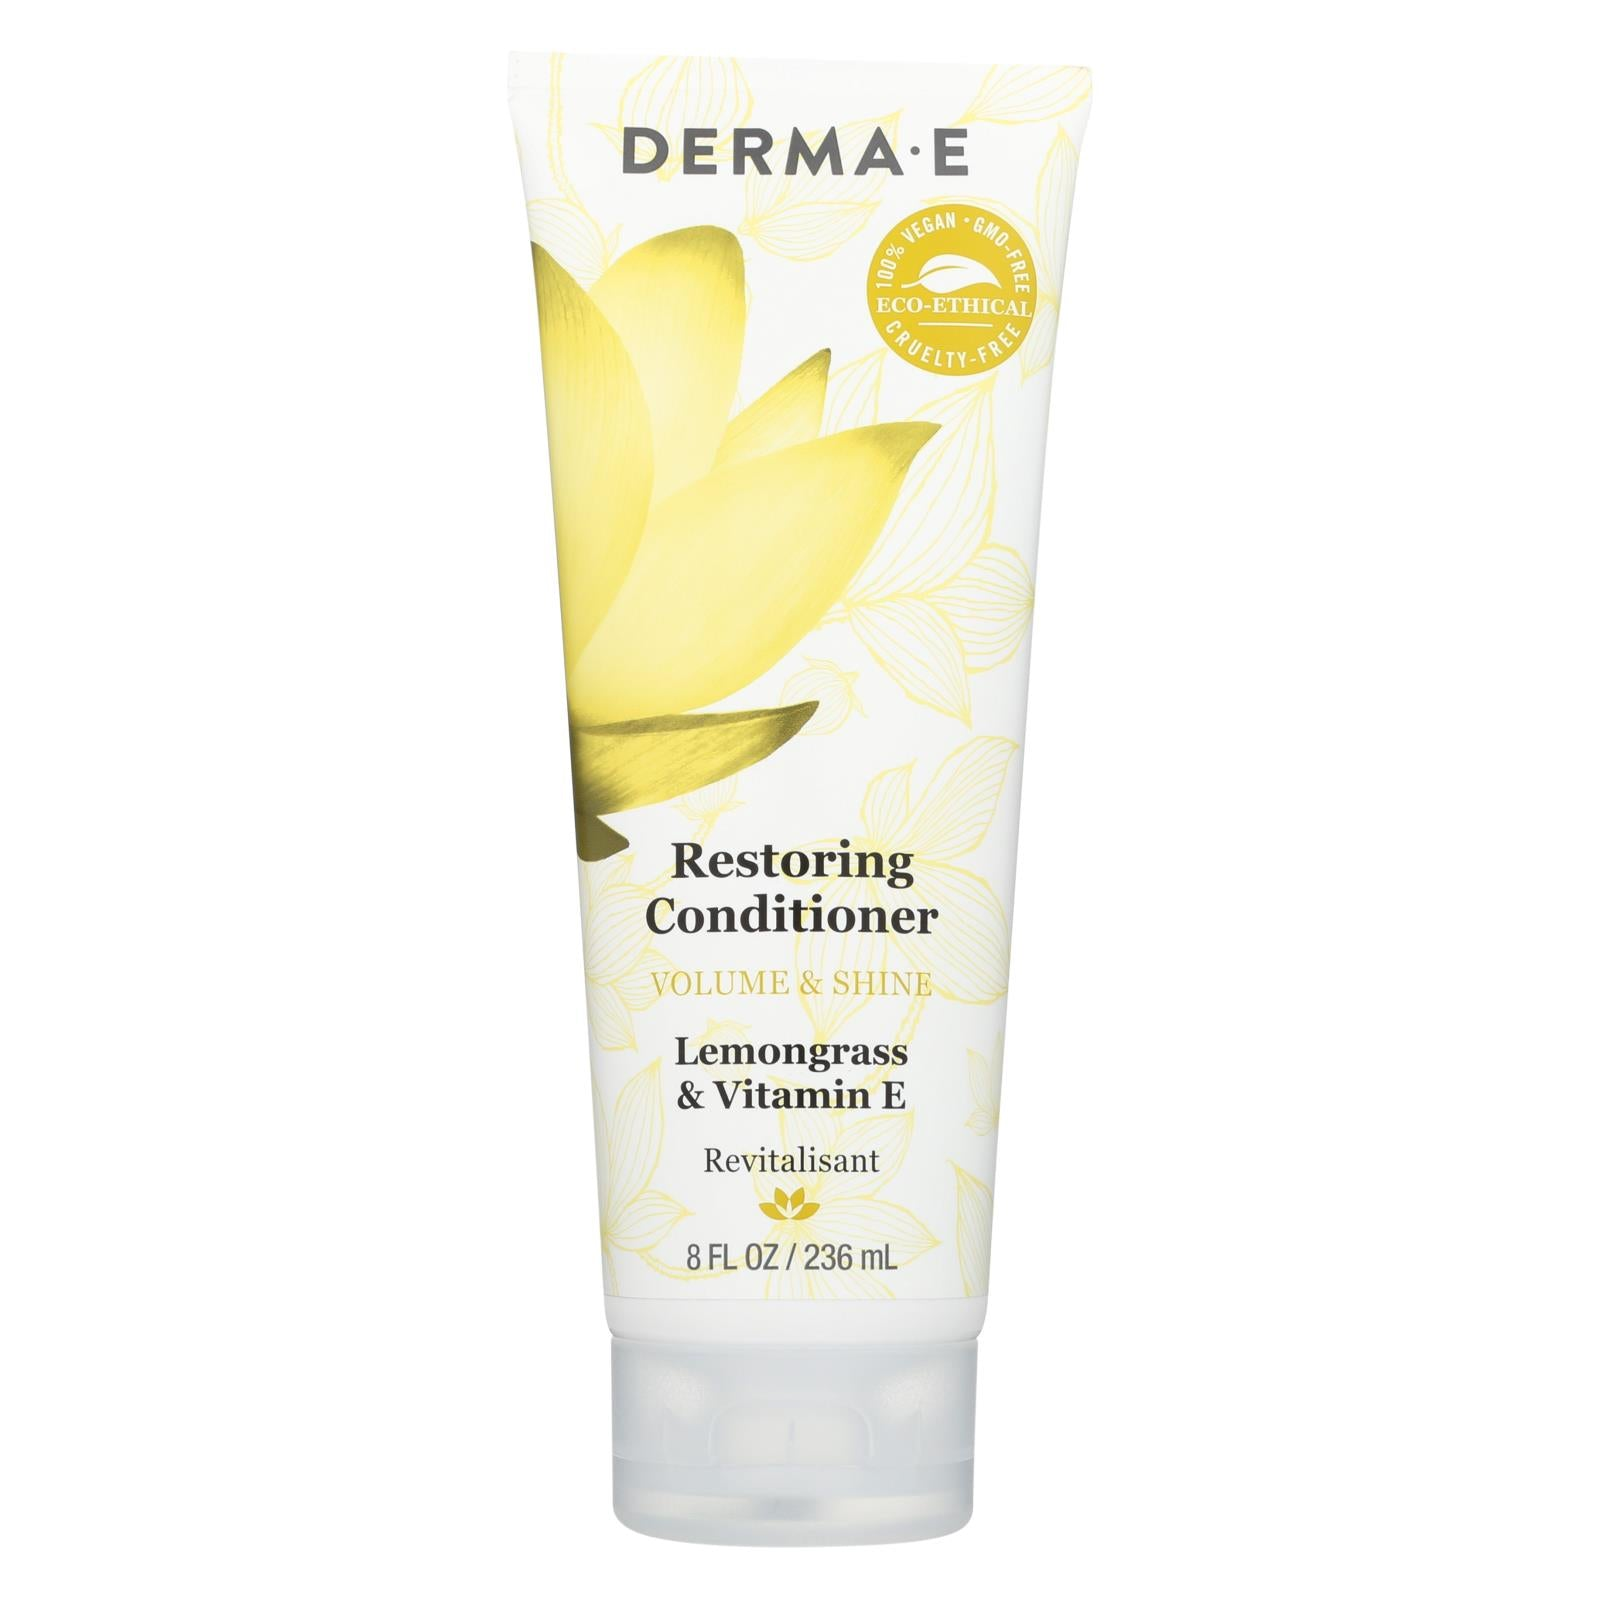 Buy Derma E Conditioner - Volume and Shine - Restoring - 8 fl oz - Conditioner from Veroeco.com